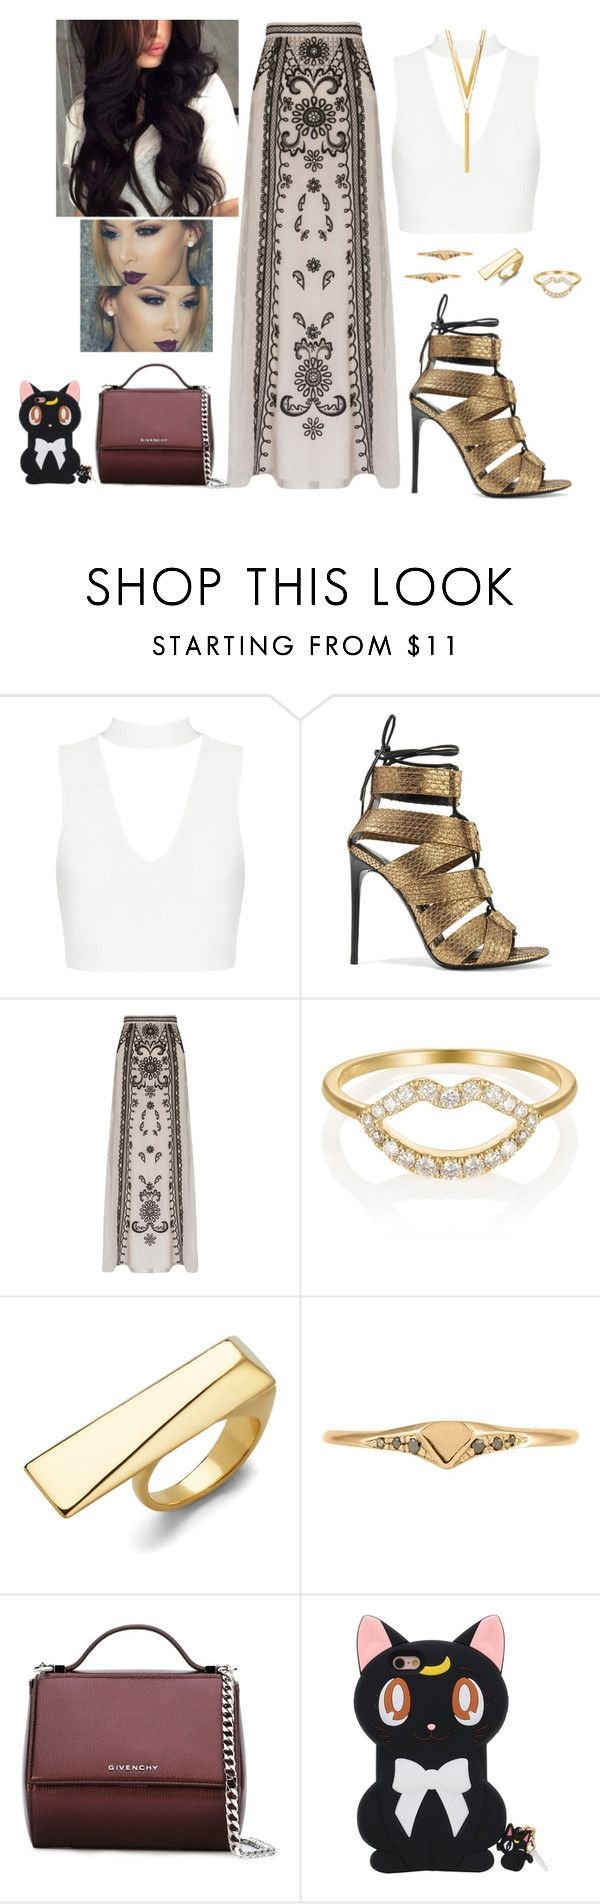 """Sem título #1139"" by anaritaferreira on Polyvore featuring moda, Tom Ford, Temperley London, SB LONDON, Diane Von Furstenberg, Lee Renee, Givenchy e BERRICLE"